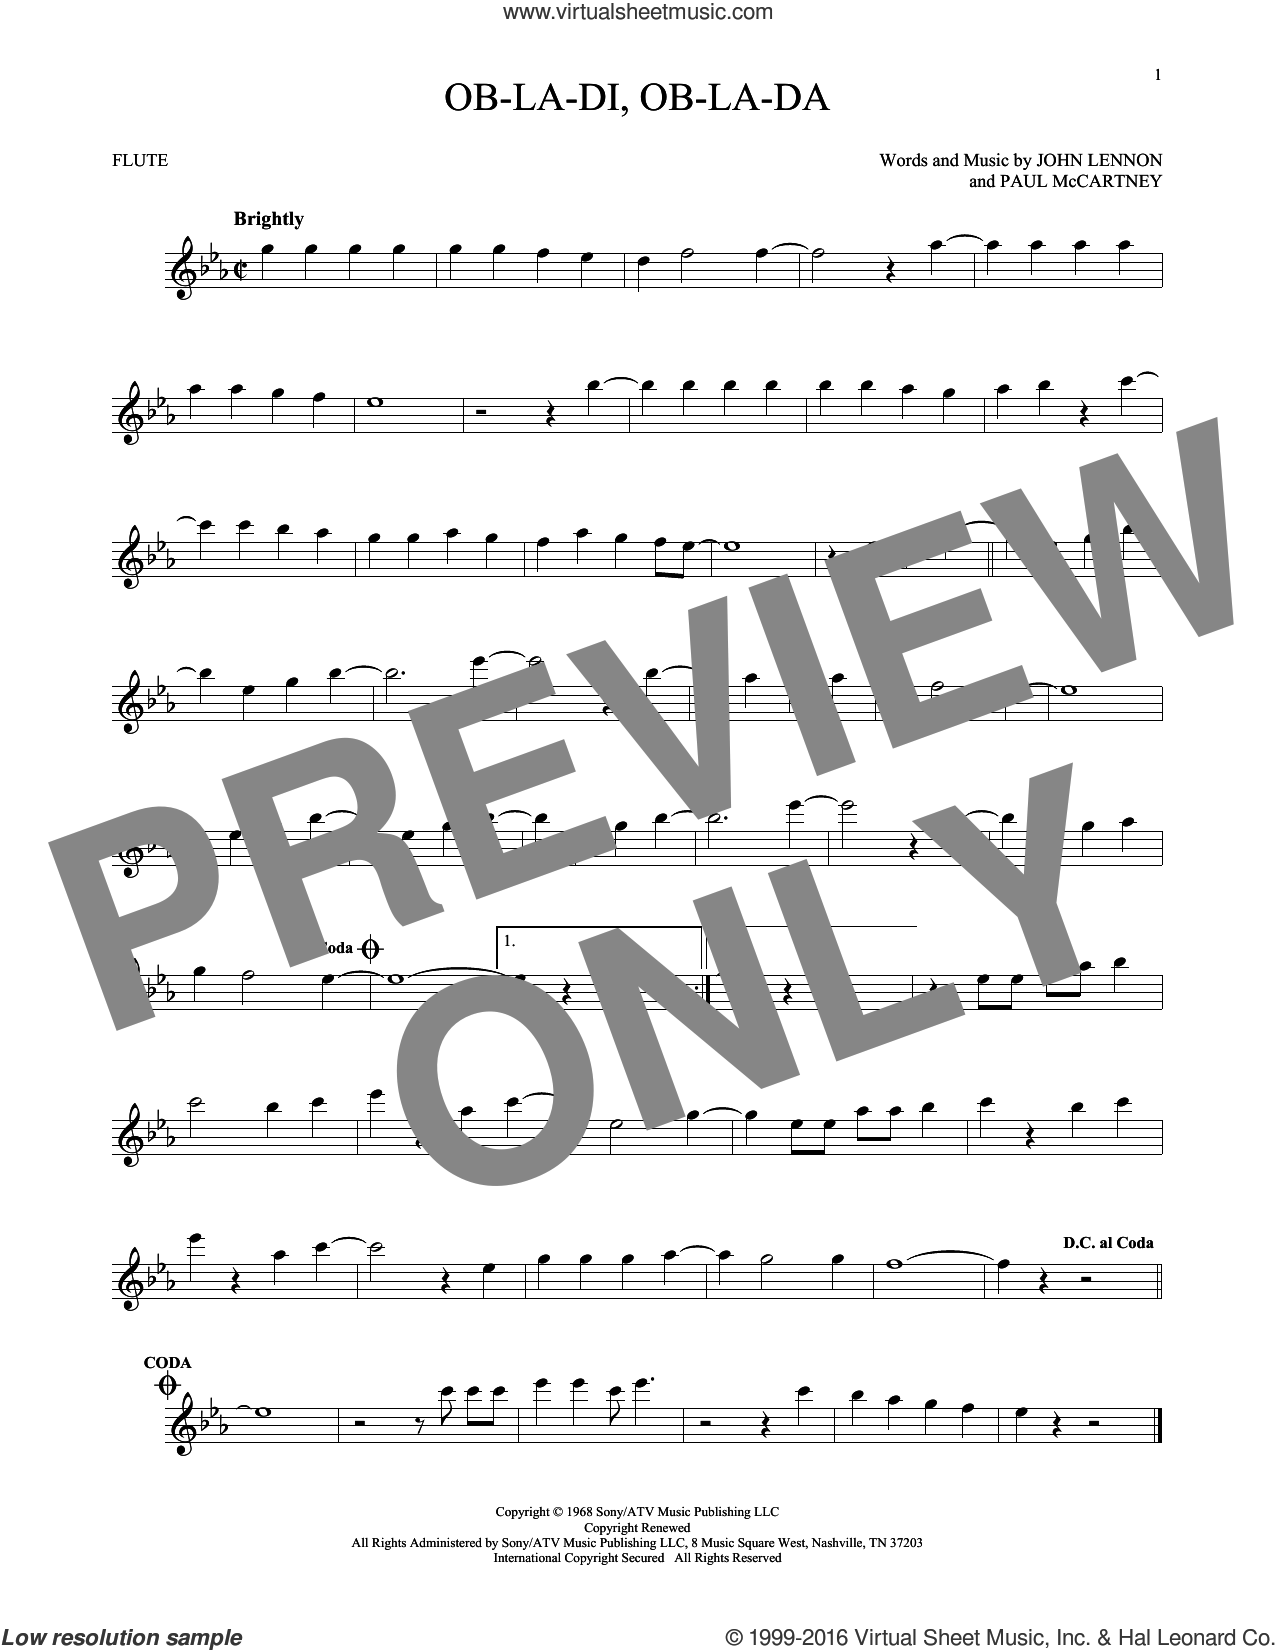 Ob-La-Di, Ob-La-Da sheet music for flute solo by The Beatles, John Lennon and Paul McCartney, intermediate. Score Image Preview.